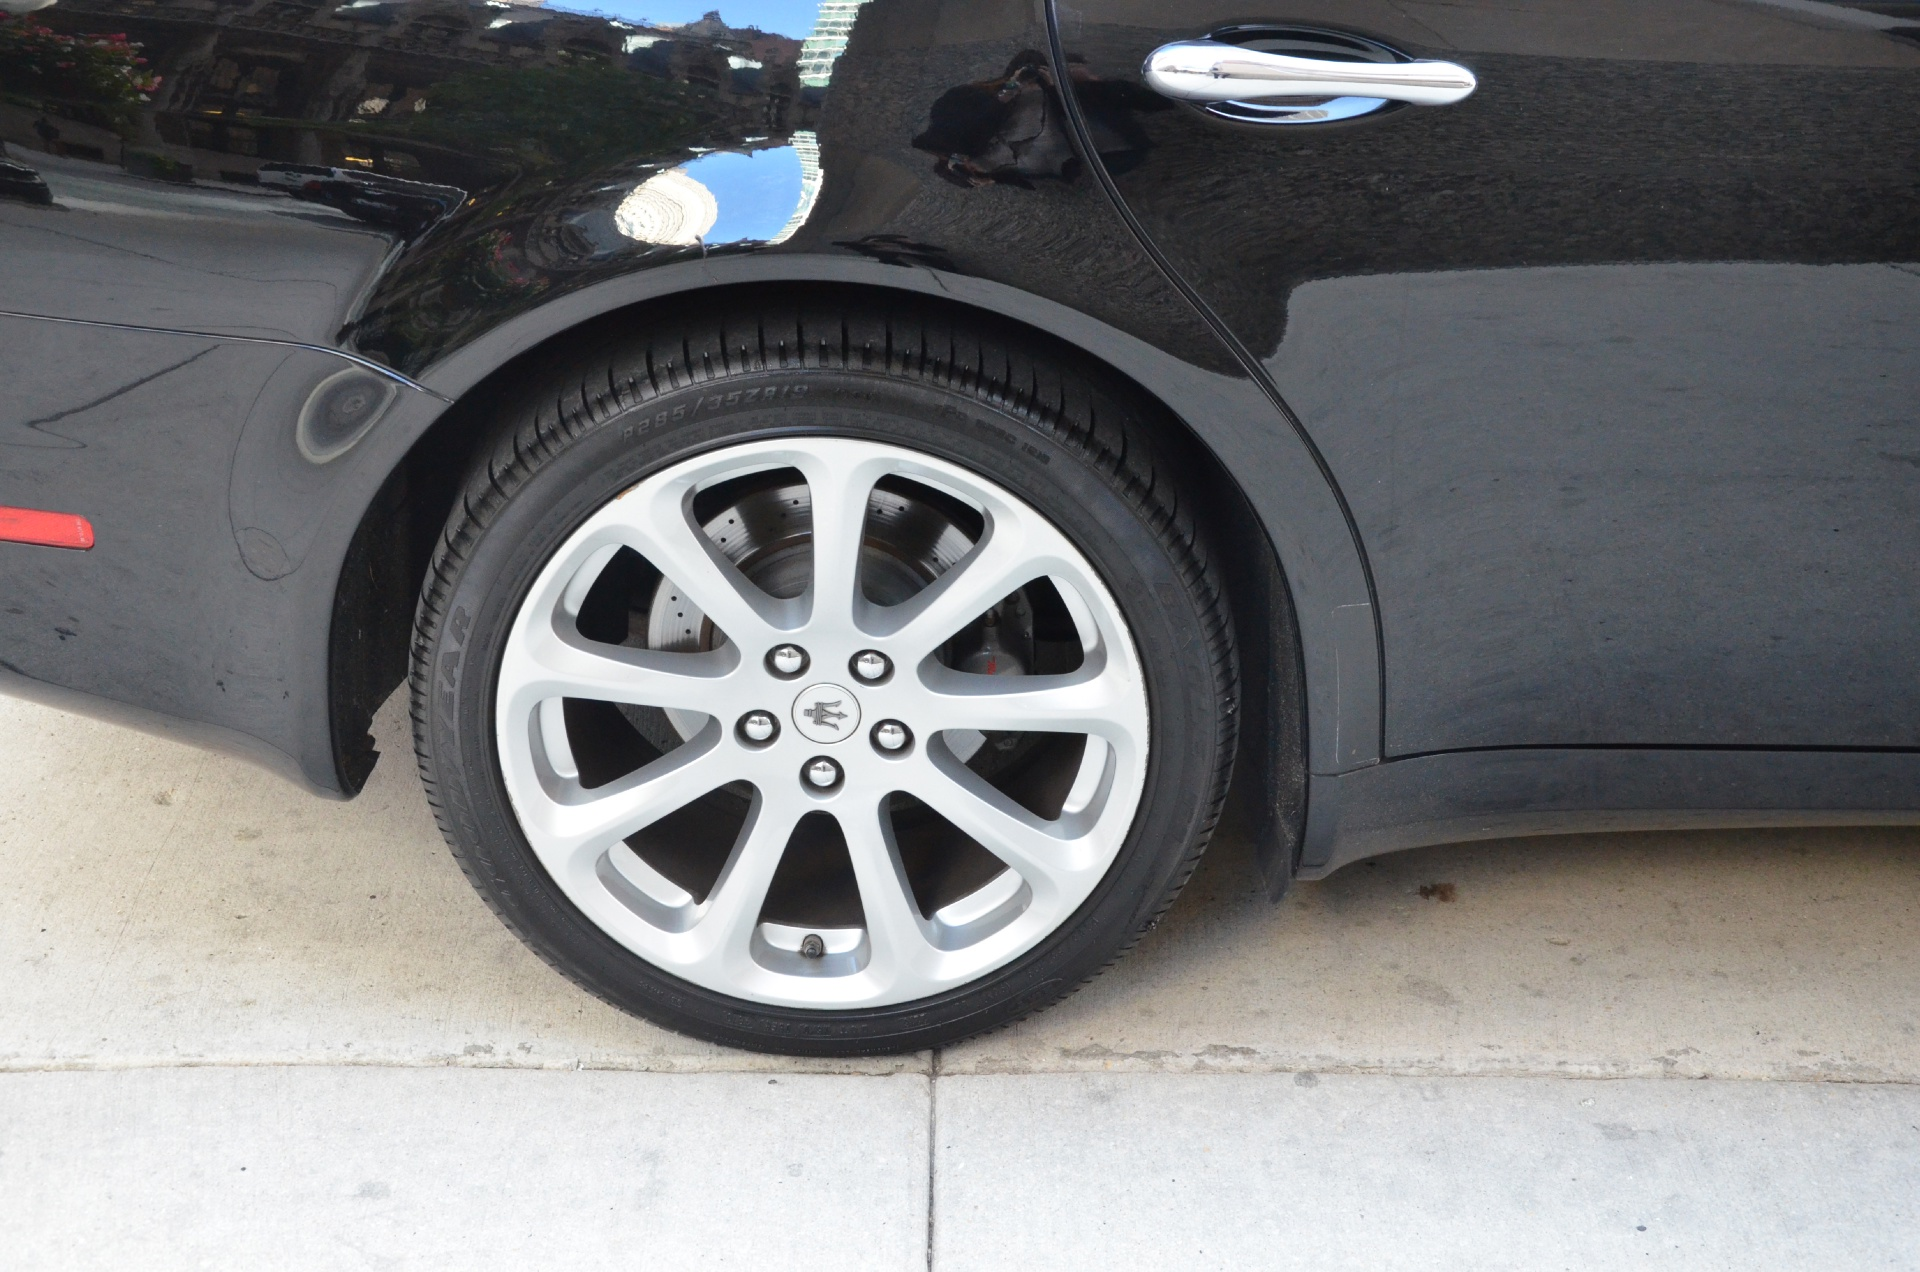 24 Inch Rims: Used 24 Inch Rims For Sale In Chicago